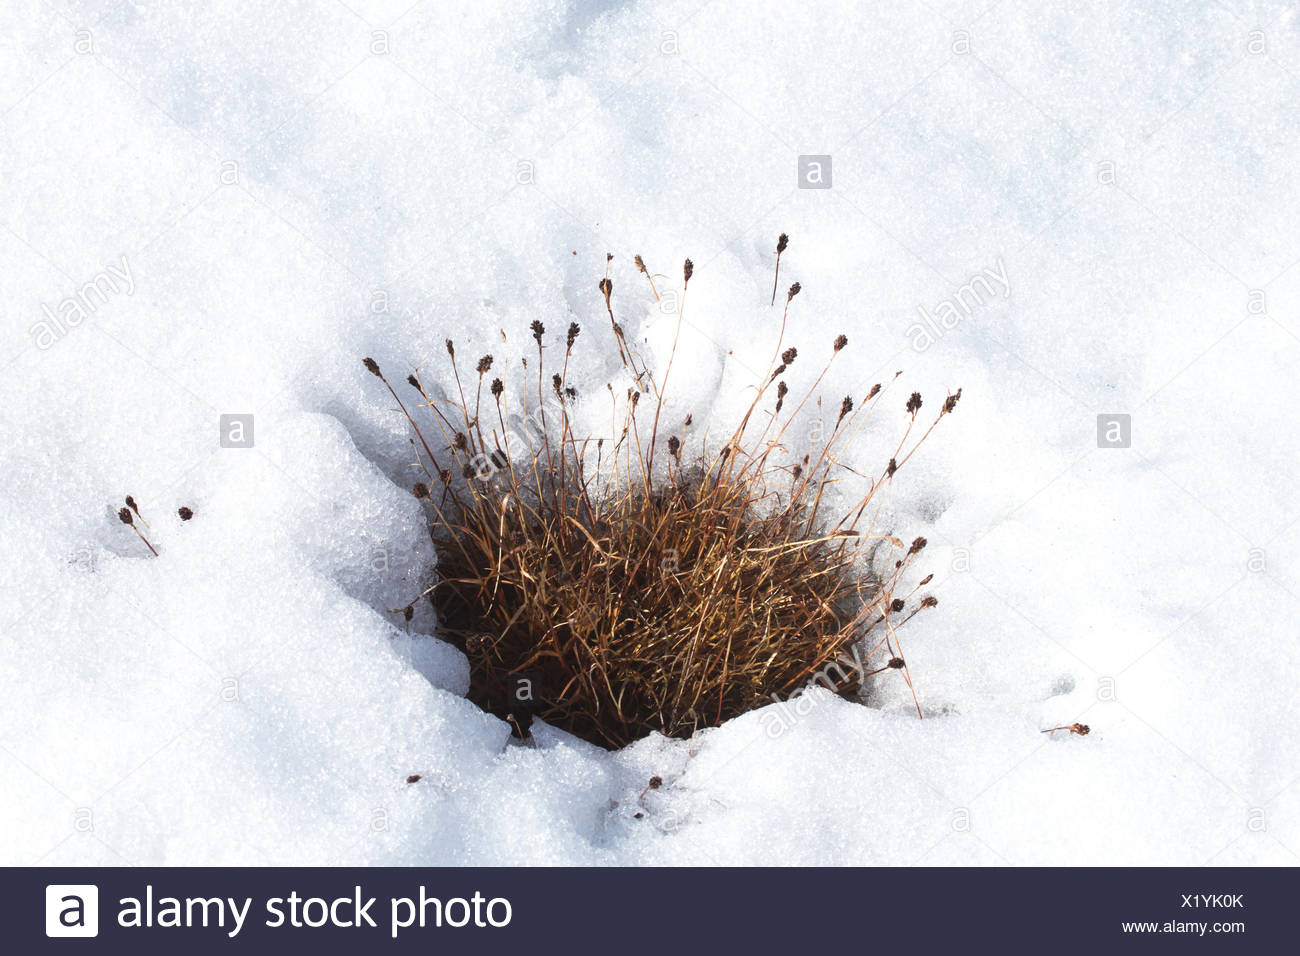 Last year's grasses peek through the melting snow in the brief spring on Spitzbergen Island. - Stock Image